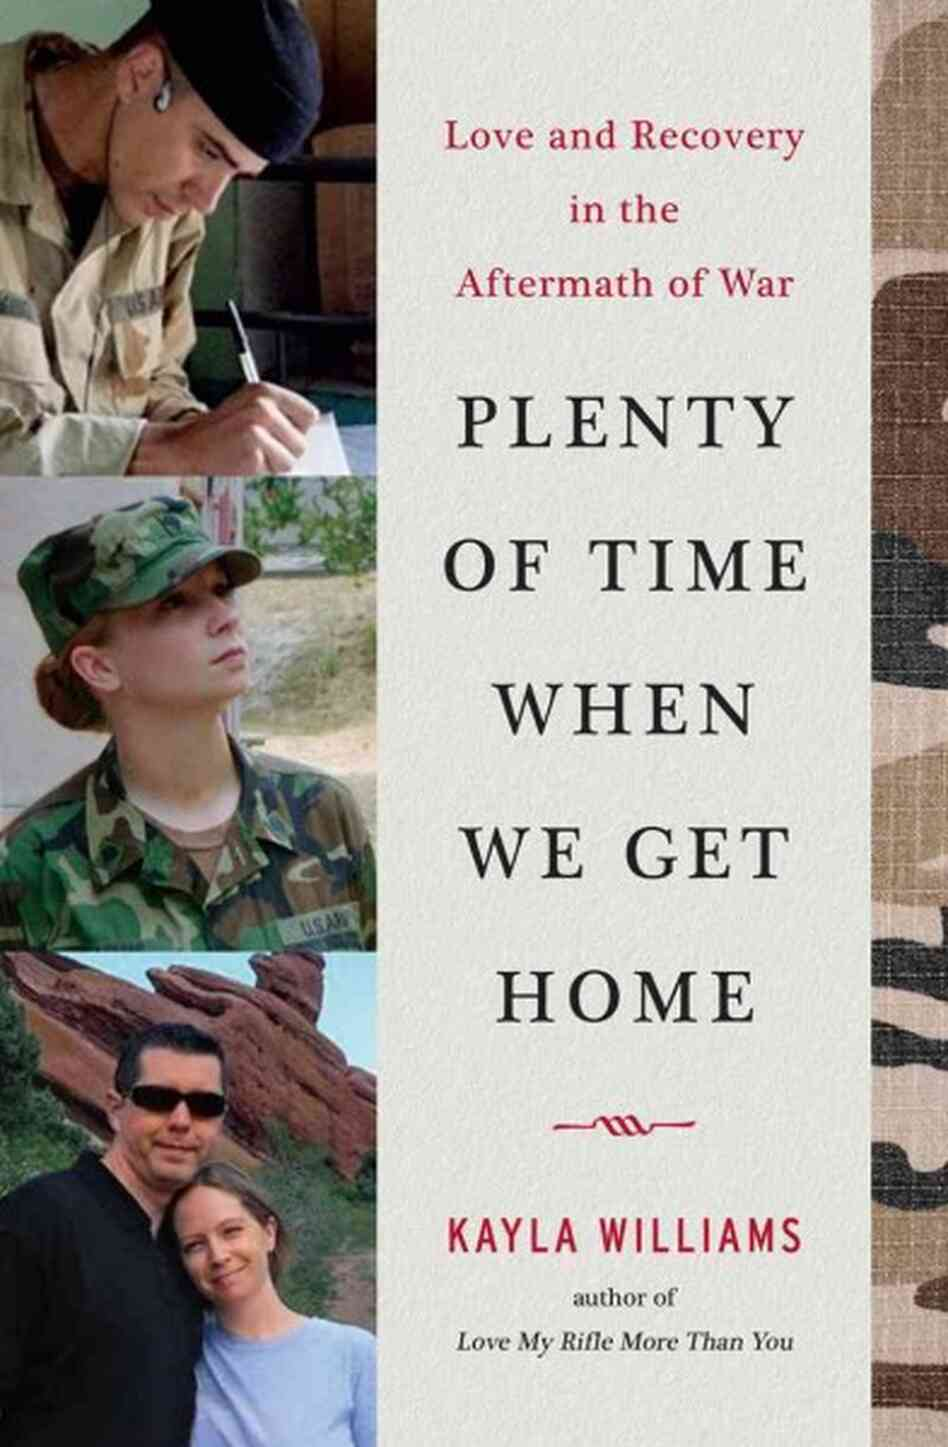 For Military Couples. It's A Long Recovery 'When We Get Home' : NPR